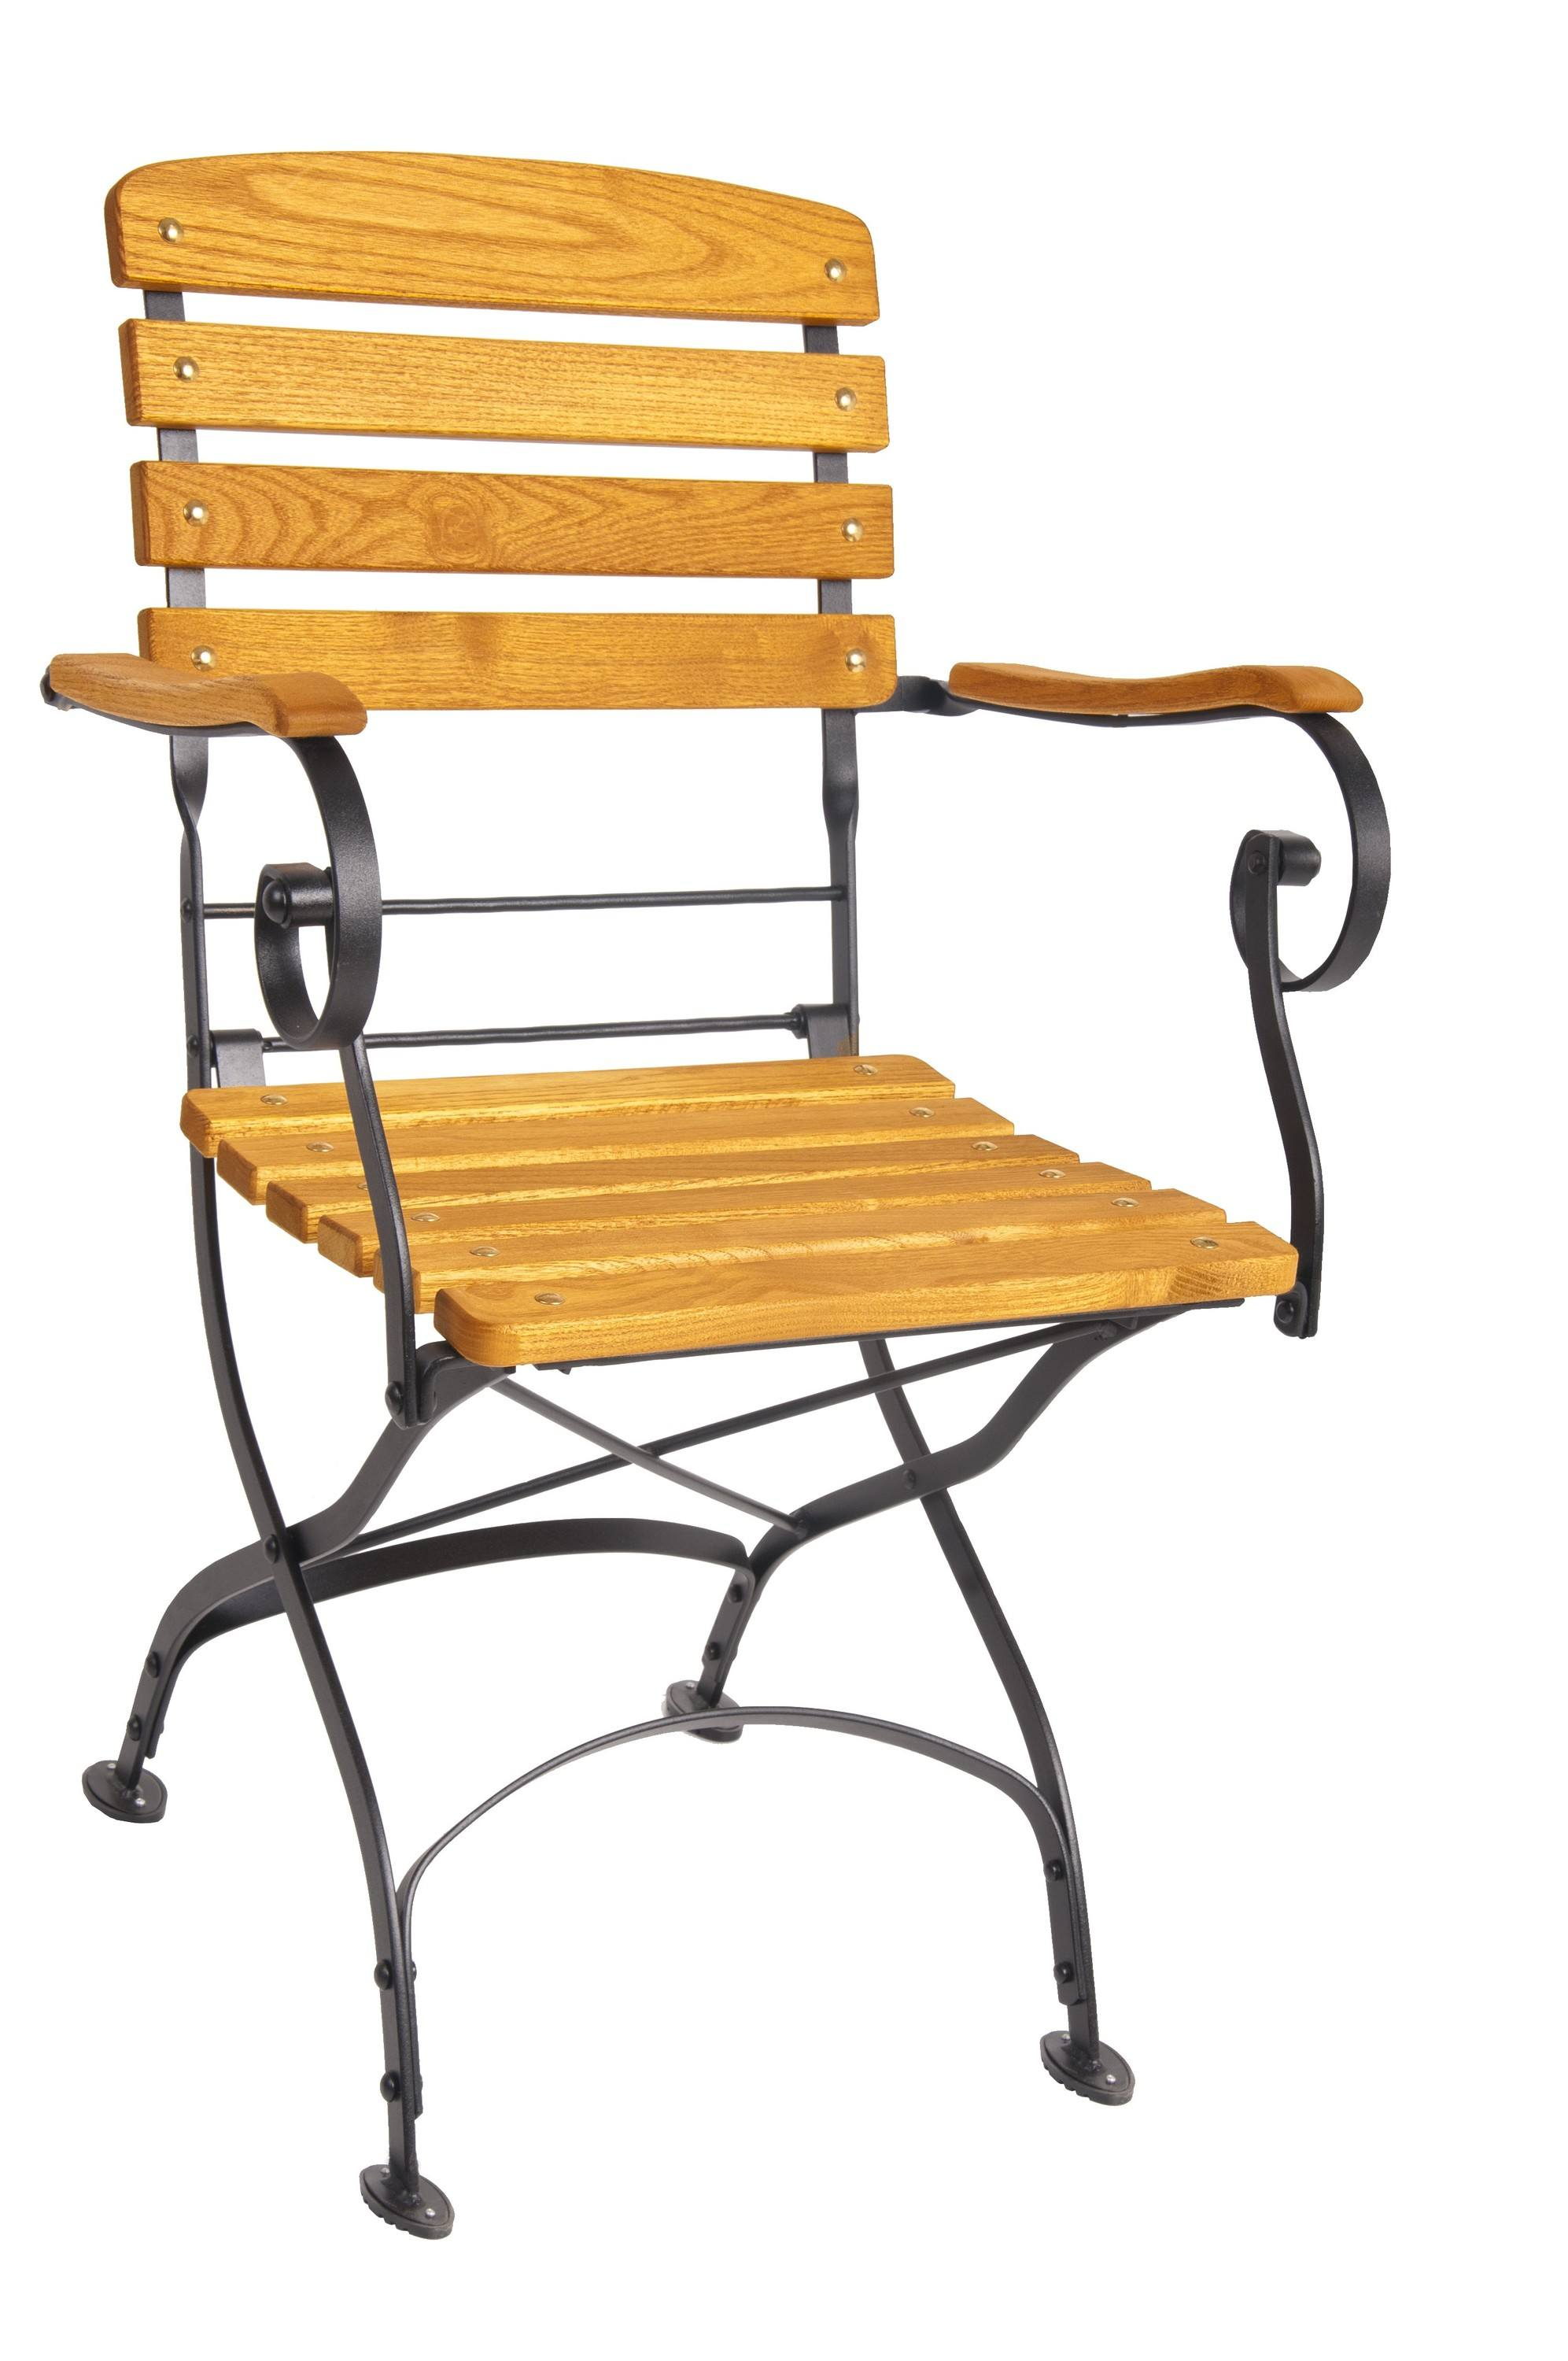 <p>Outdoor Furniture – Metal & Wooden Dining Collection – Classico Armchair.</p> <p> </p> <p>Classico Furniture – Armchair with light coloured hardwood seat armrests and backrest with black hand-forged frame.</p> <p> </p> <p>Ideally suited for either indoor or outdoor relaxed dining location or more intimate café bistro al fresco area or for events requiring easy to fold and store furniture.</p>